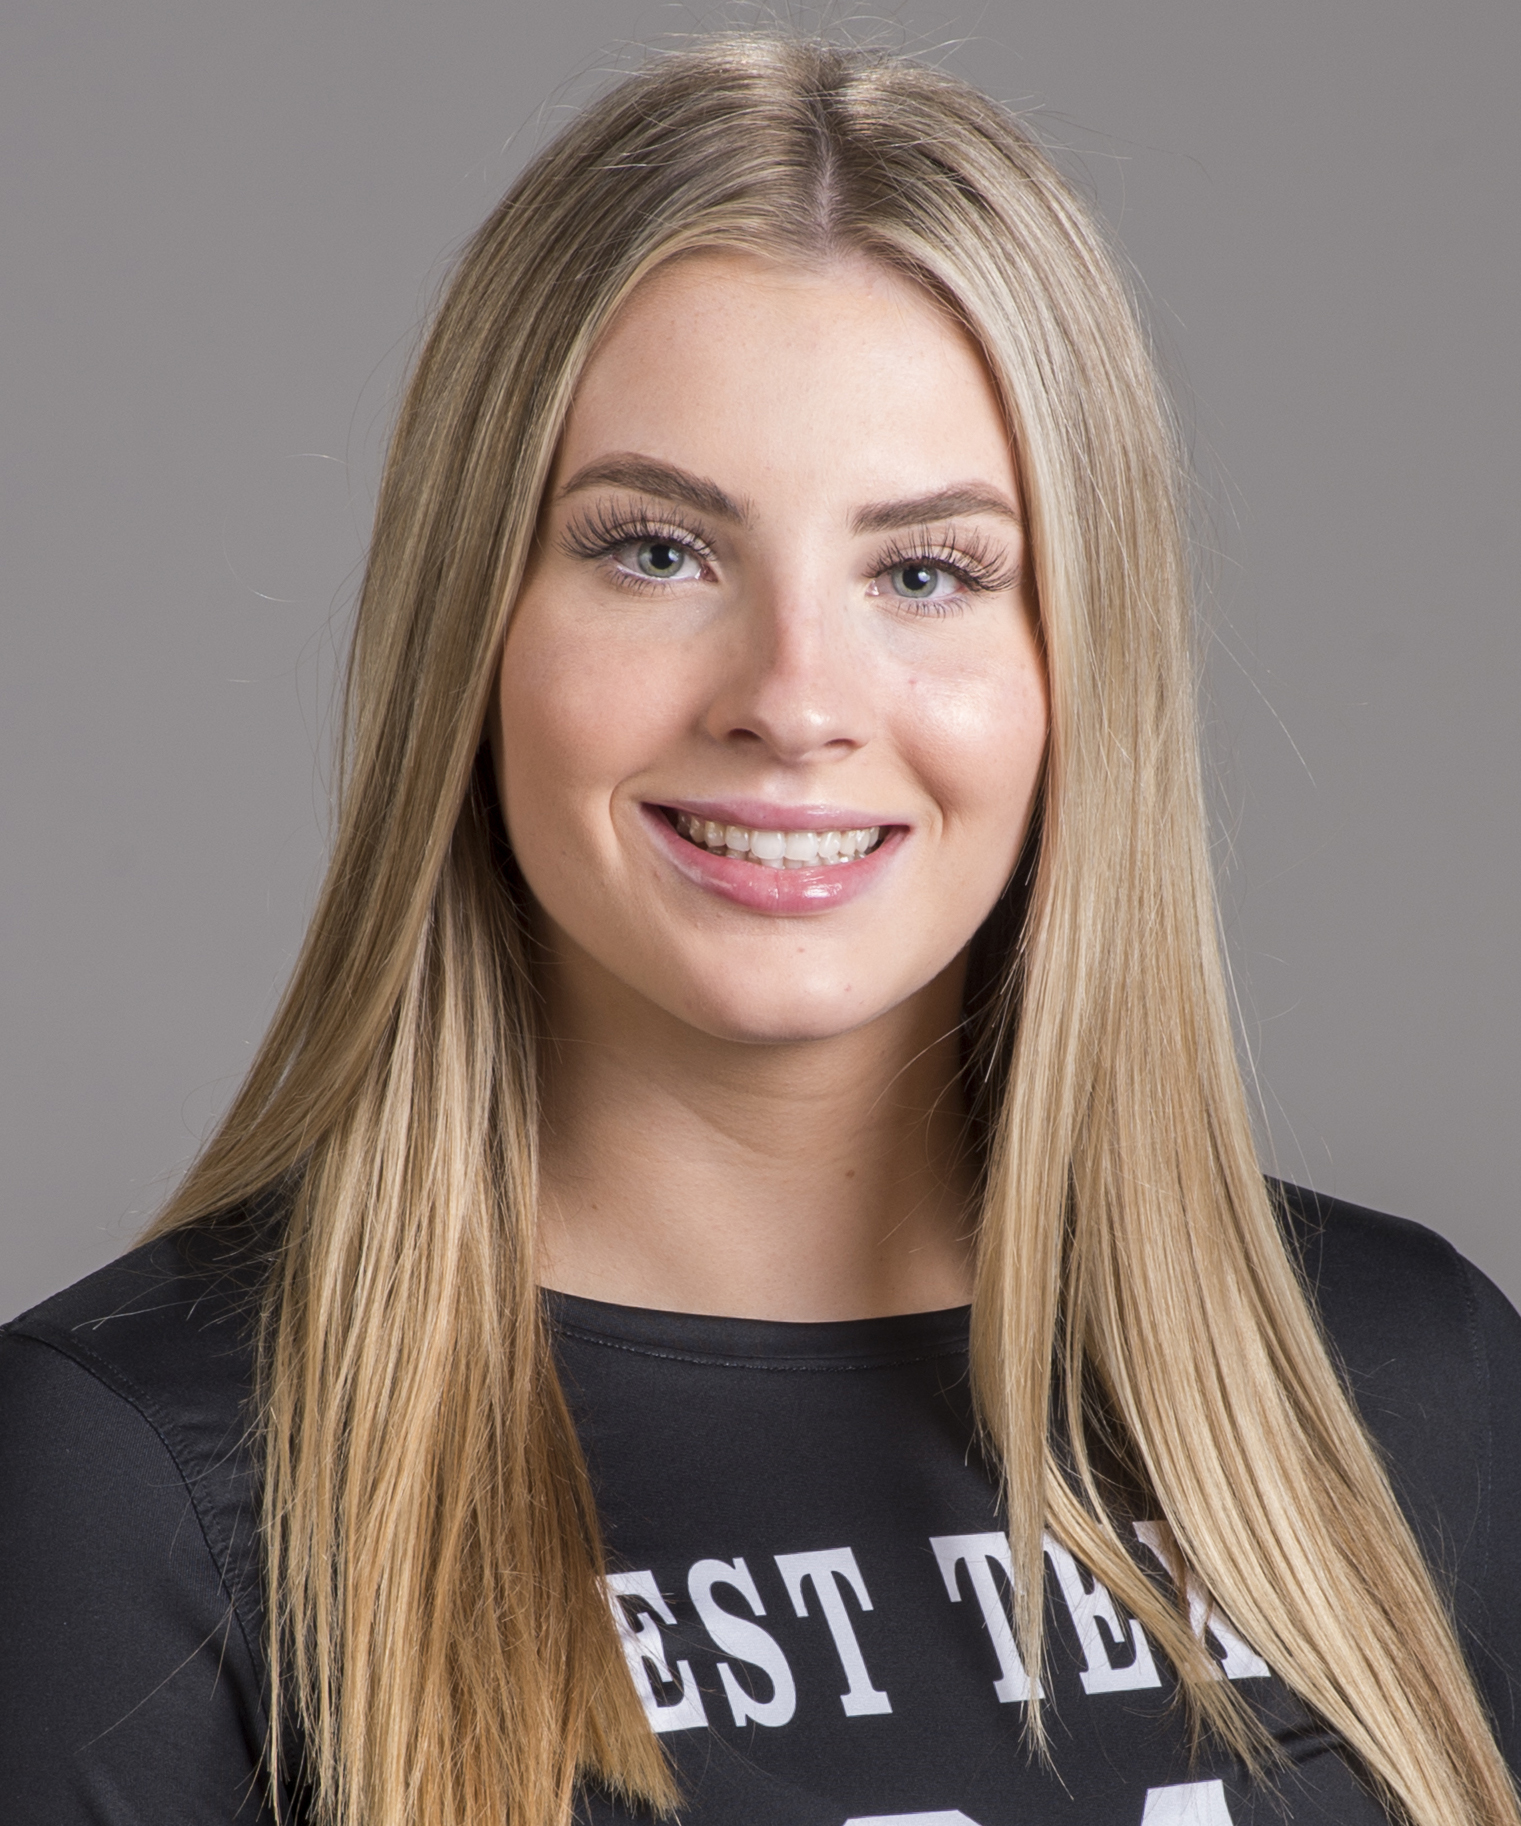 Katrina Johnson 2020 Volleyball West Texas A M University Athletics As of 2014, johnson lived in las vegas where she hosted an online radio show, uncensored radio's guilty pleasures, 2 1 although. katrina johnson 2020 volleyball west texas a m university athletics